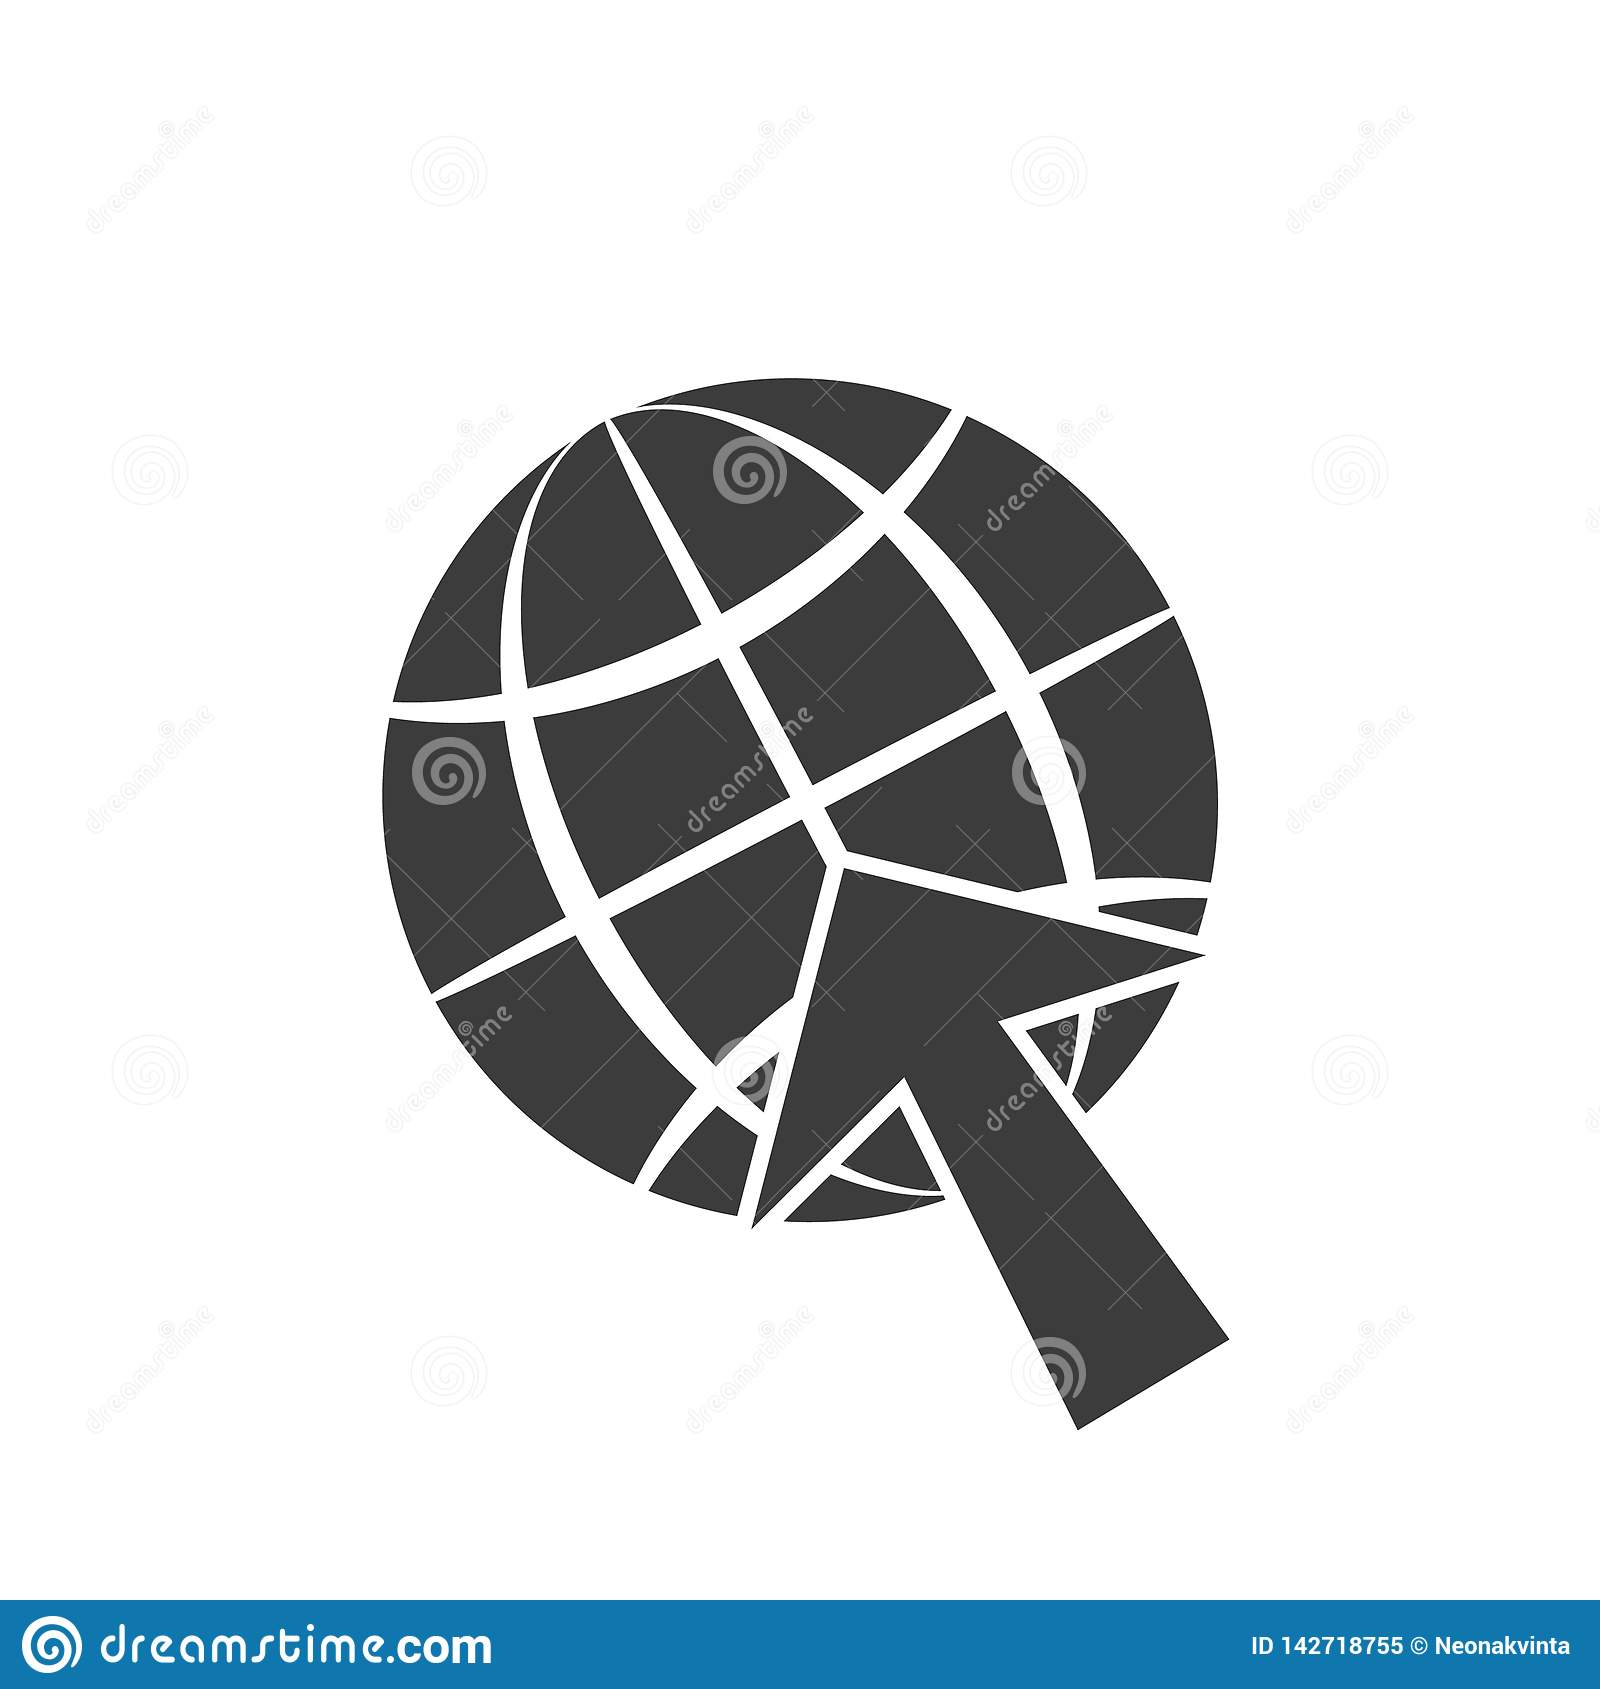 Icon symbol, globe and arrow cursor gray illustration isolate on a white background.